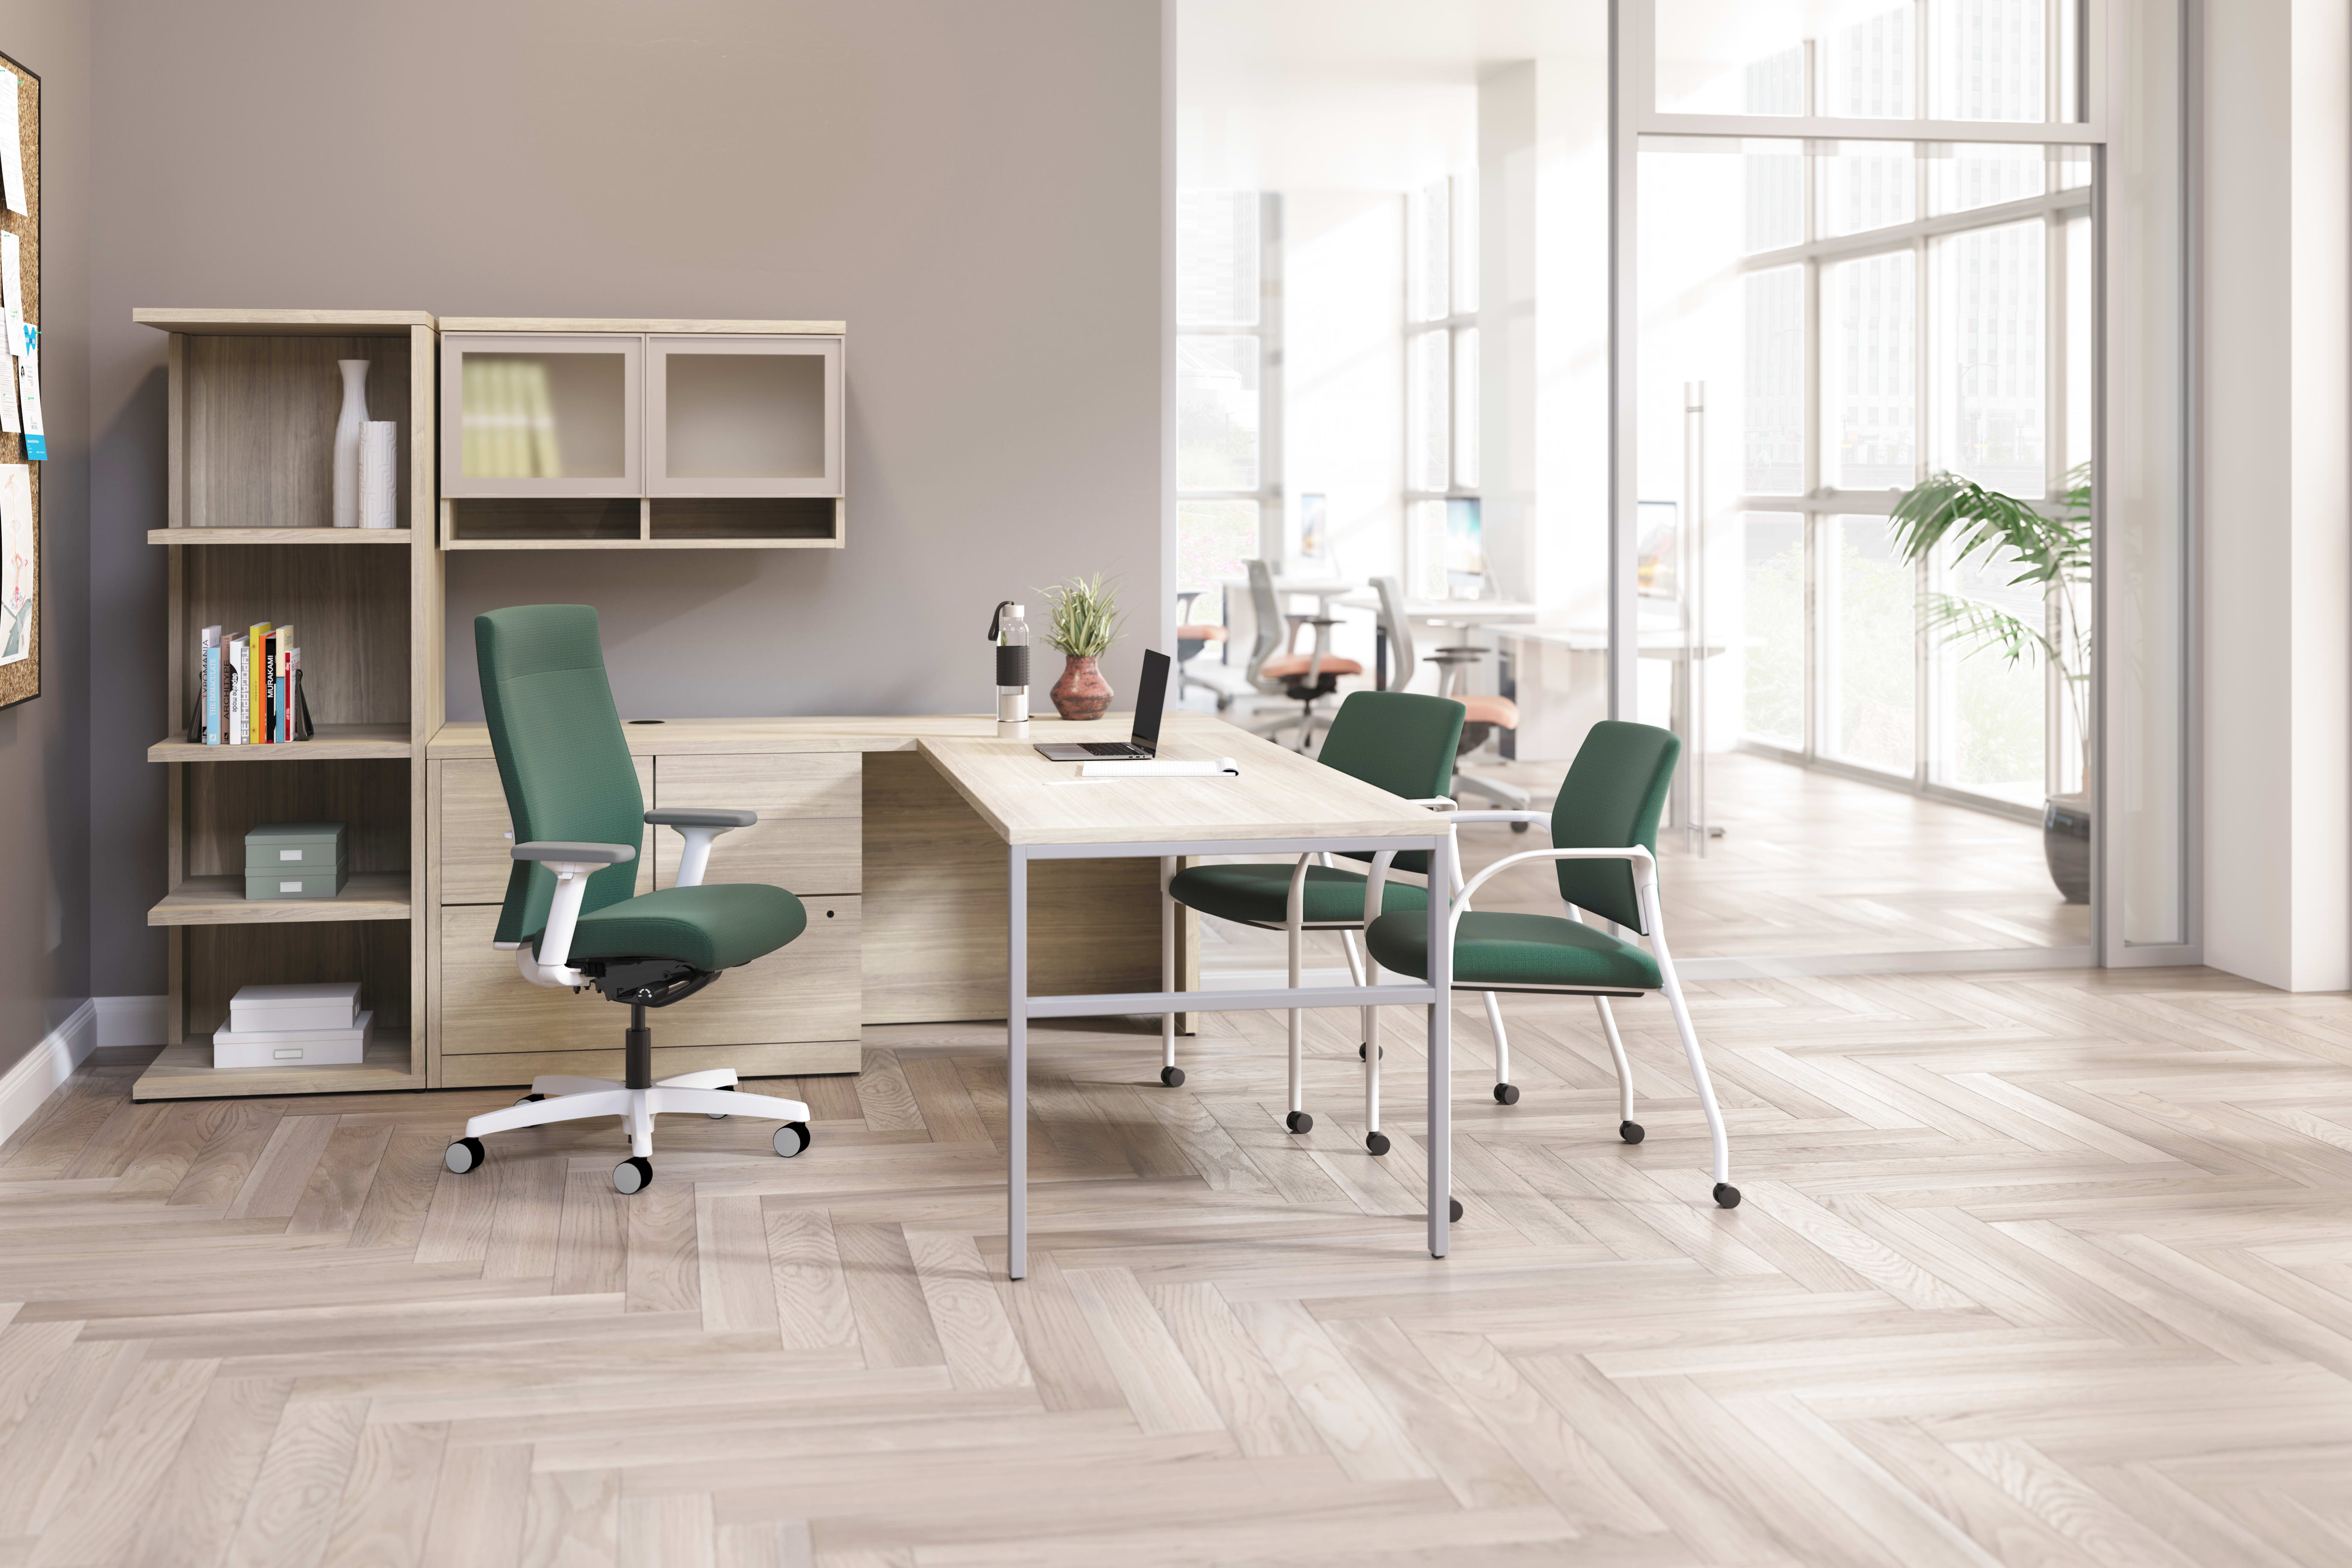 Ignition upholstered chair at 10500 Series L-shaped desk with 2 guest chairs.